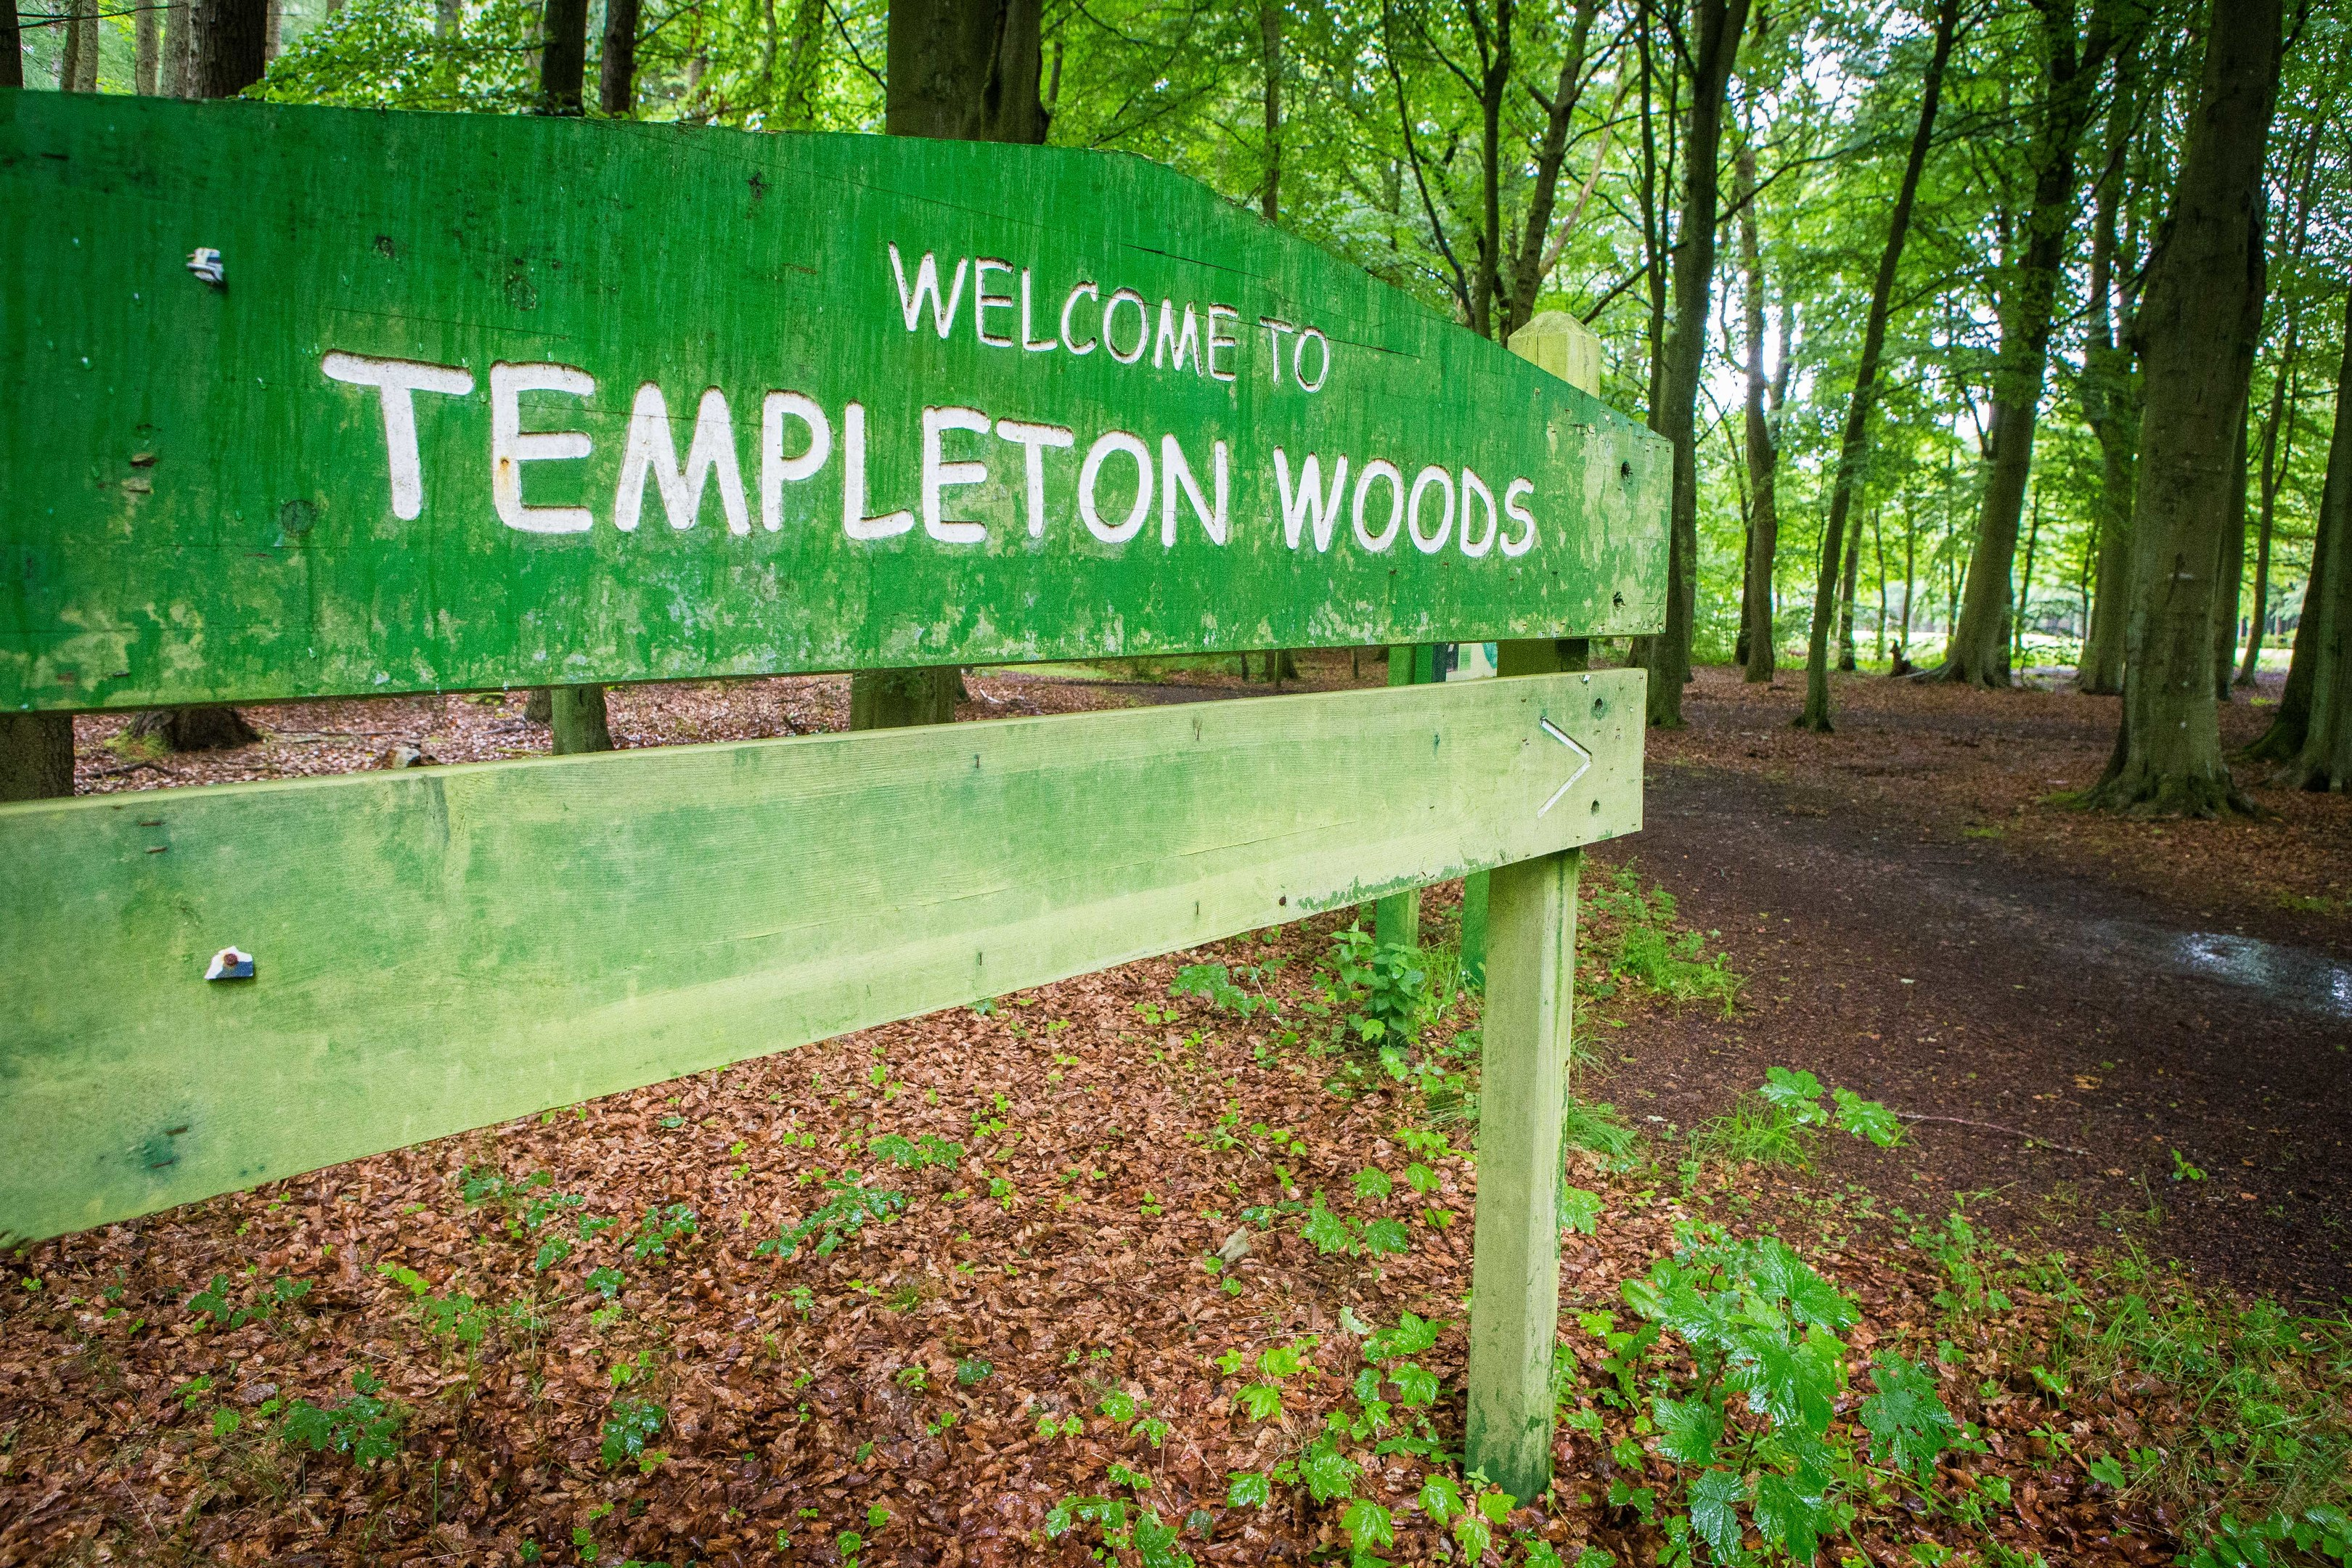 The entrance to Templeton Woods.